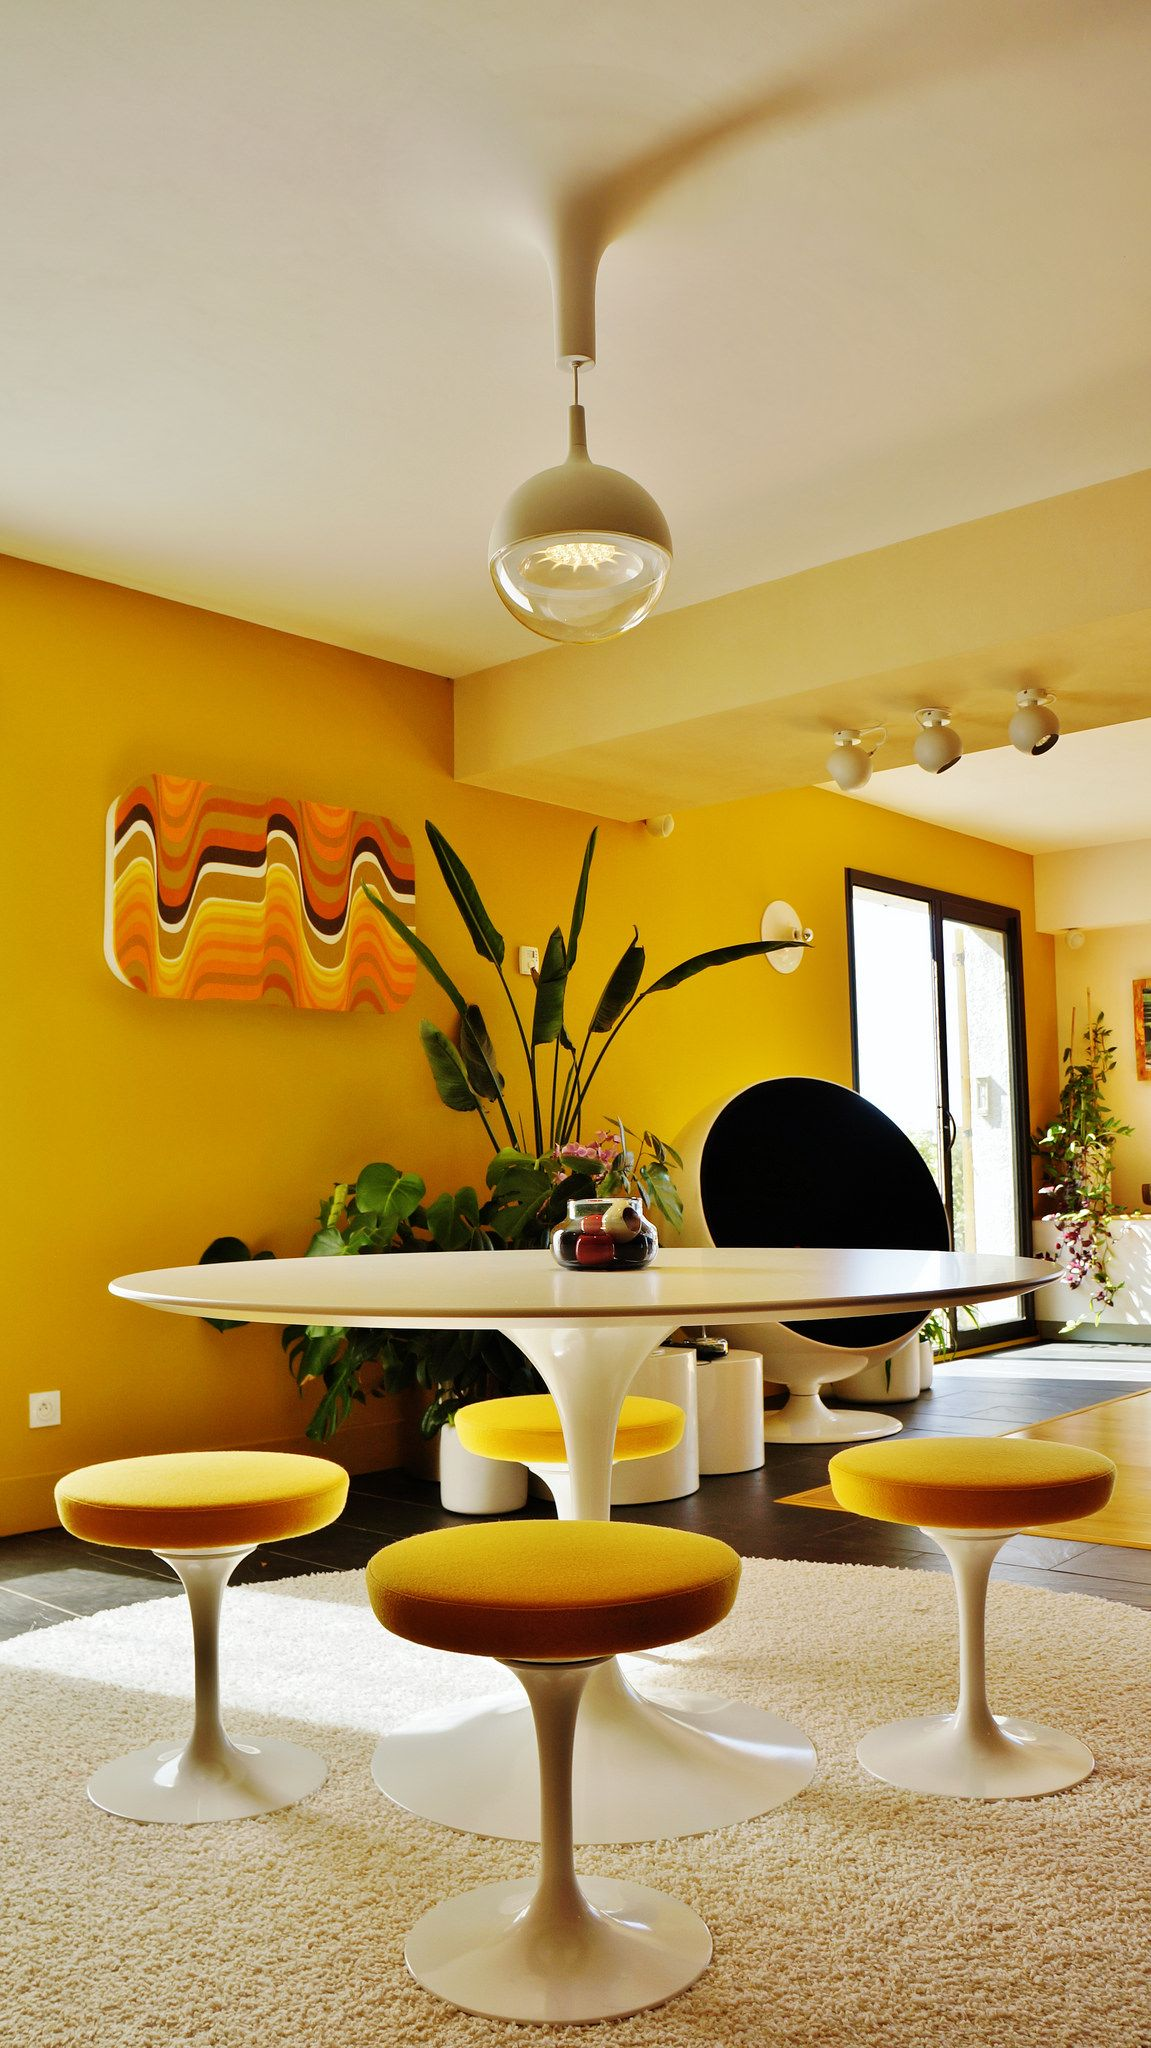 Anni 70 Arredamento kitchen (with images)   eclectic decor modern, 70s home